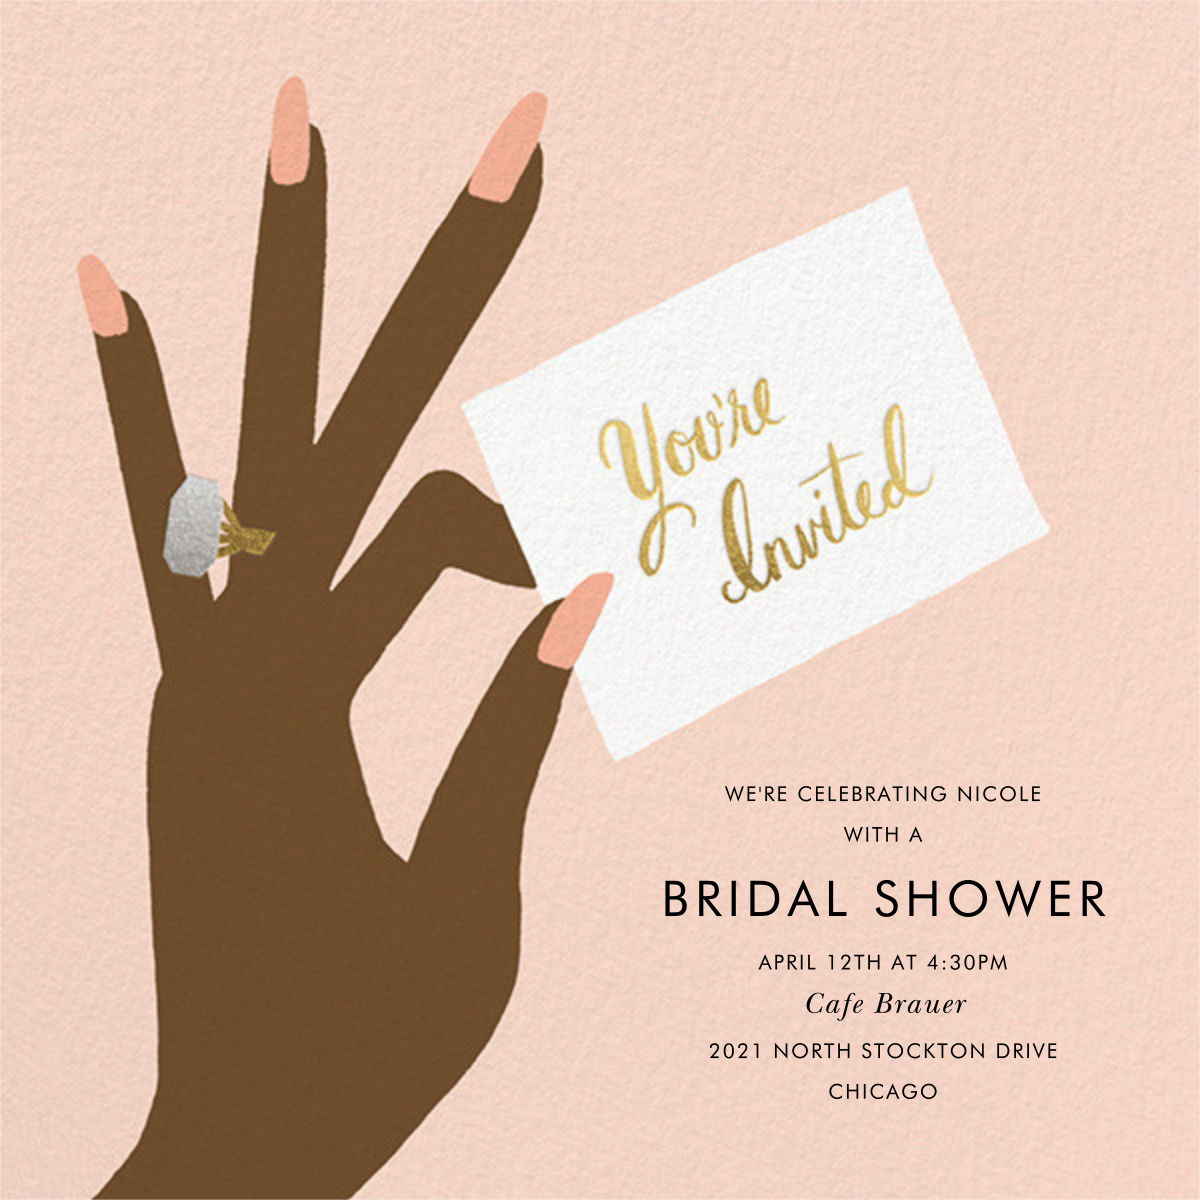 You're Invited Ring - Sherbet - Rifle Paper Co. - Bridal shower